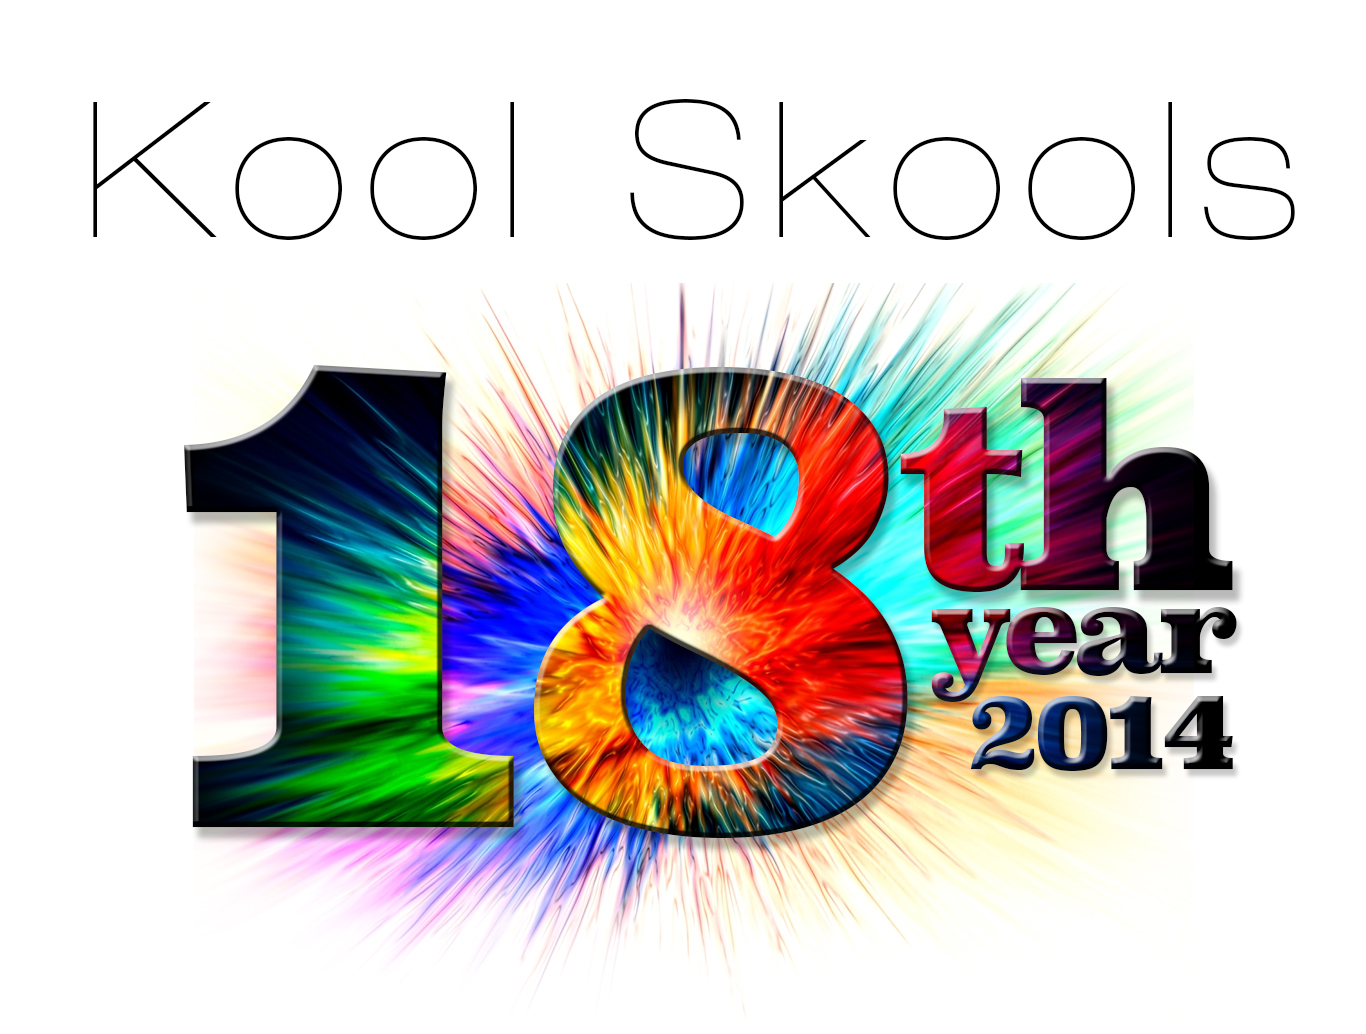 Kool Skools 18th year logo